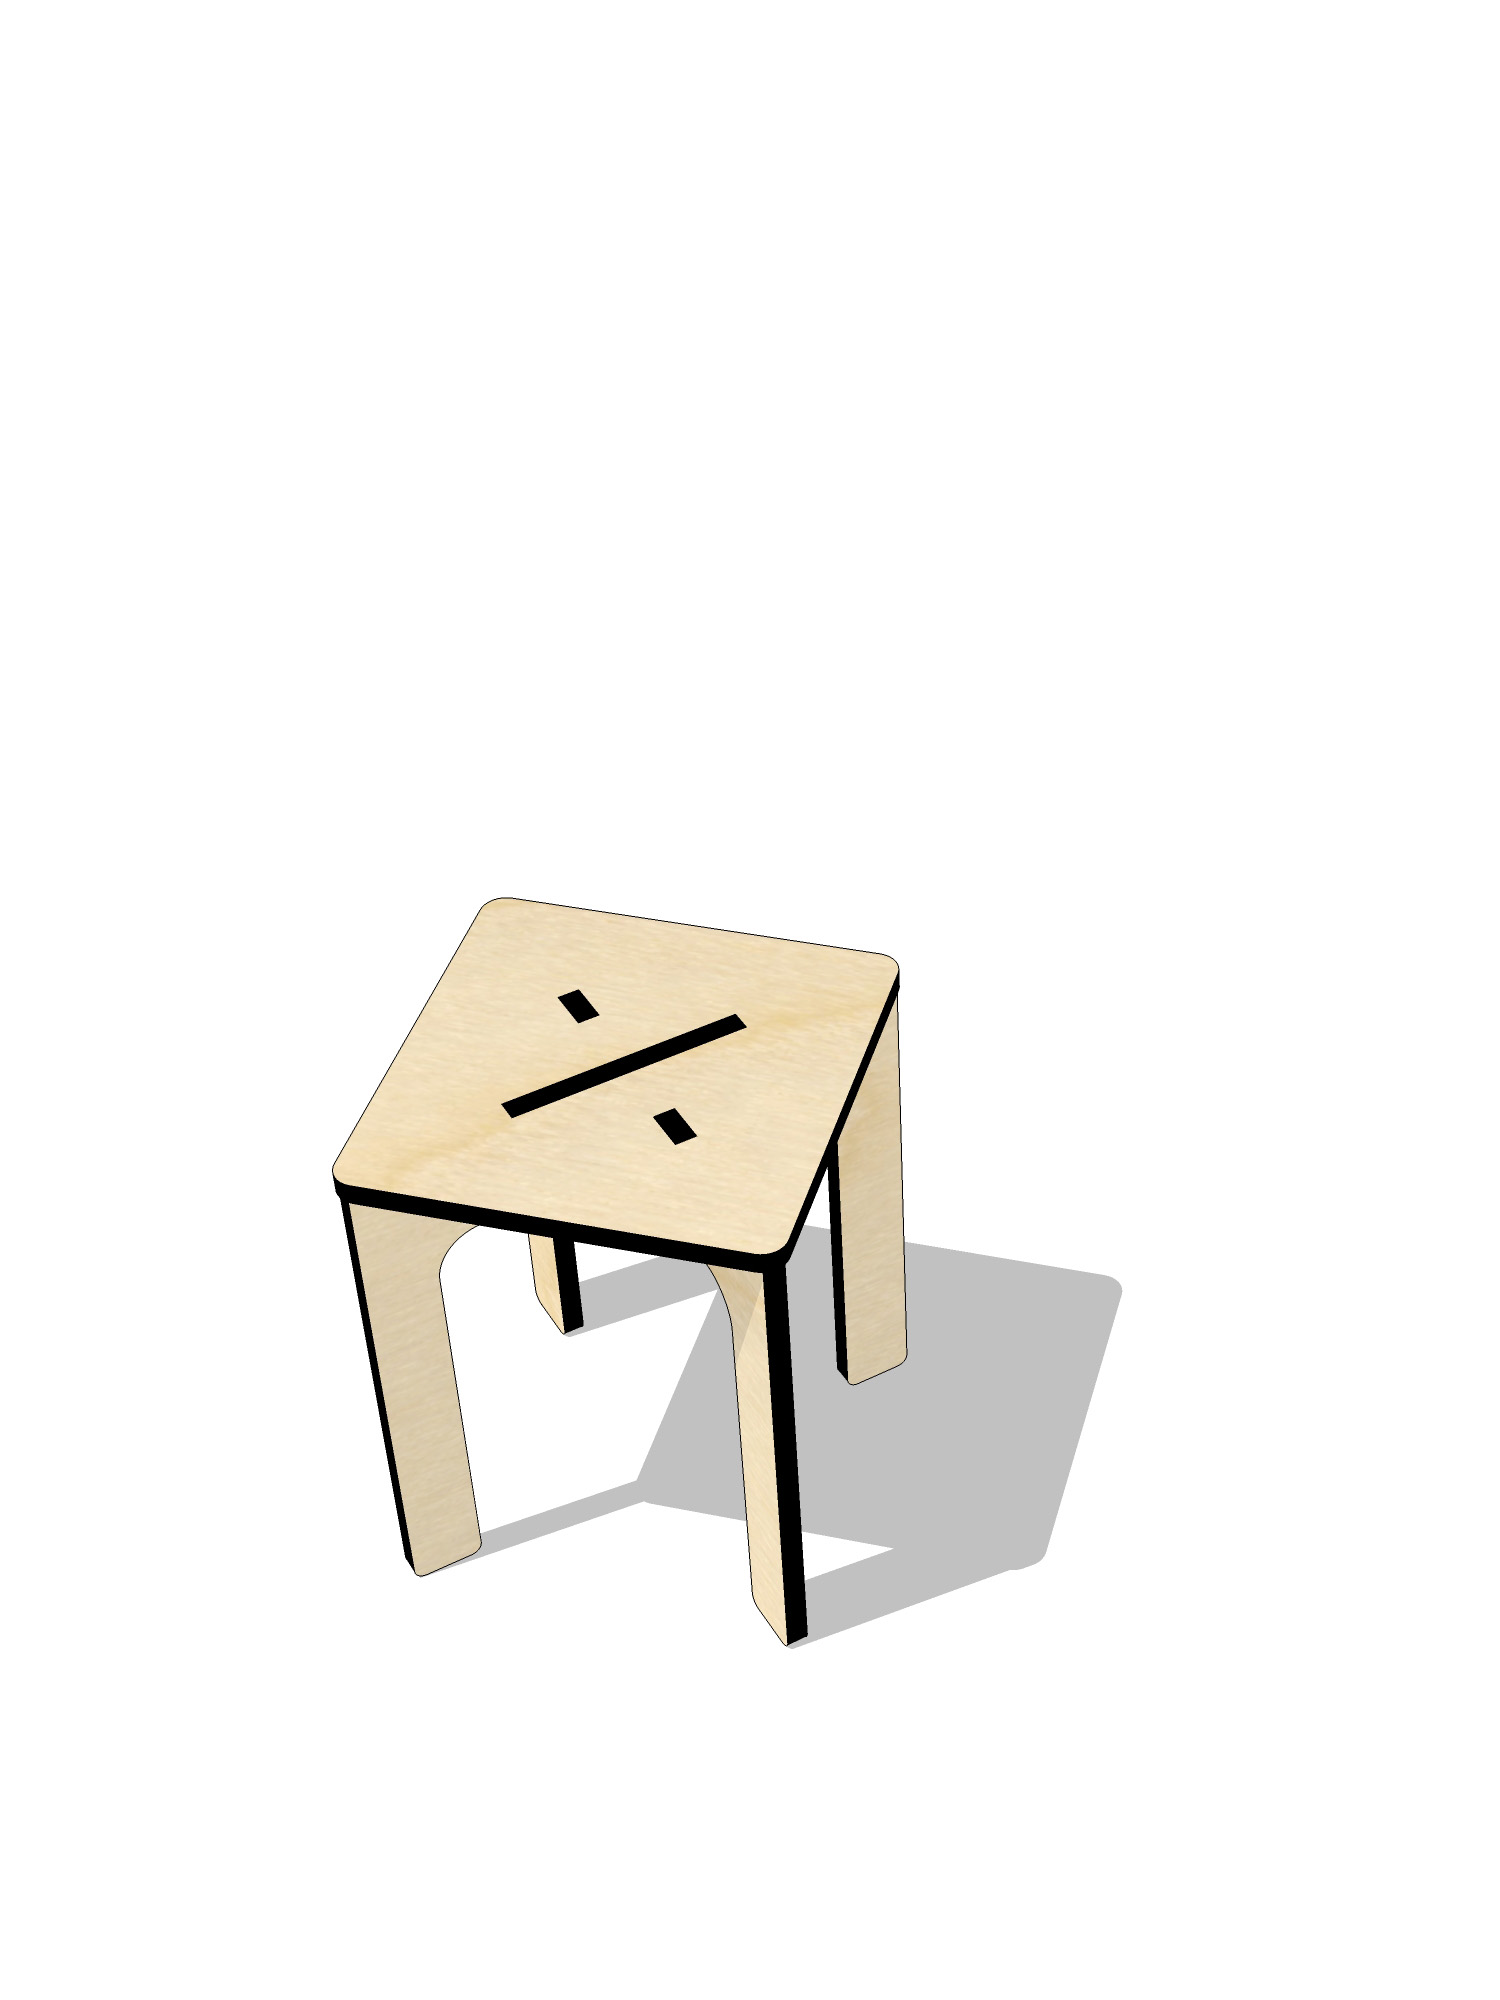 ta.le objects - ARITHMETIC 450 DIVISION STOOL EXPLODED 3